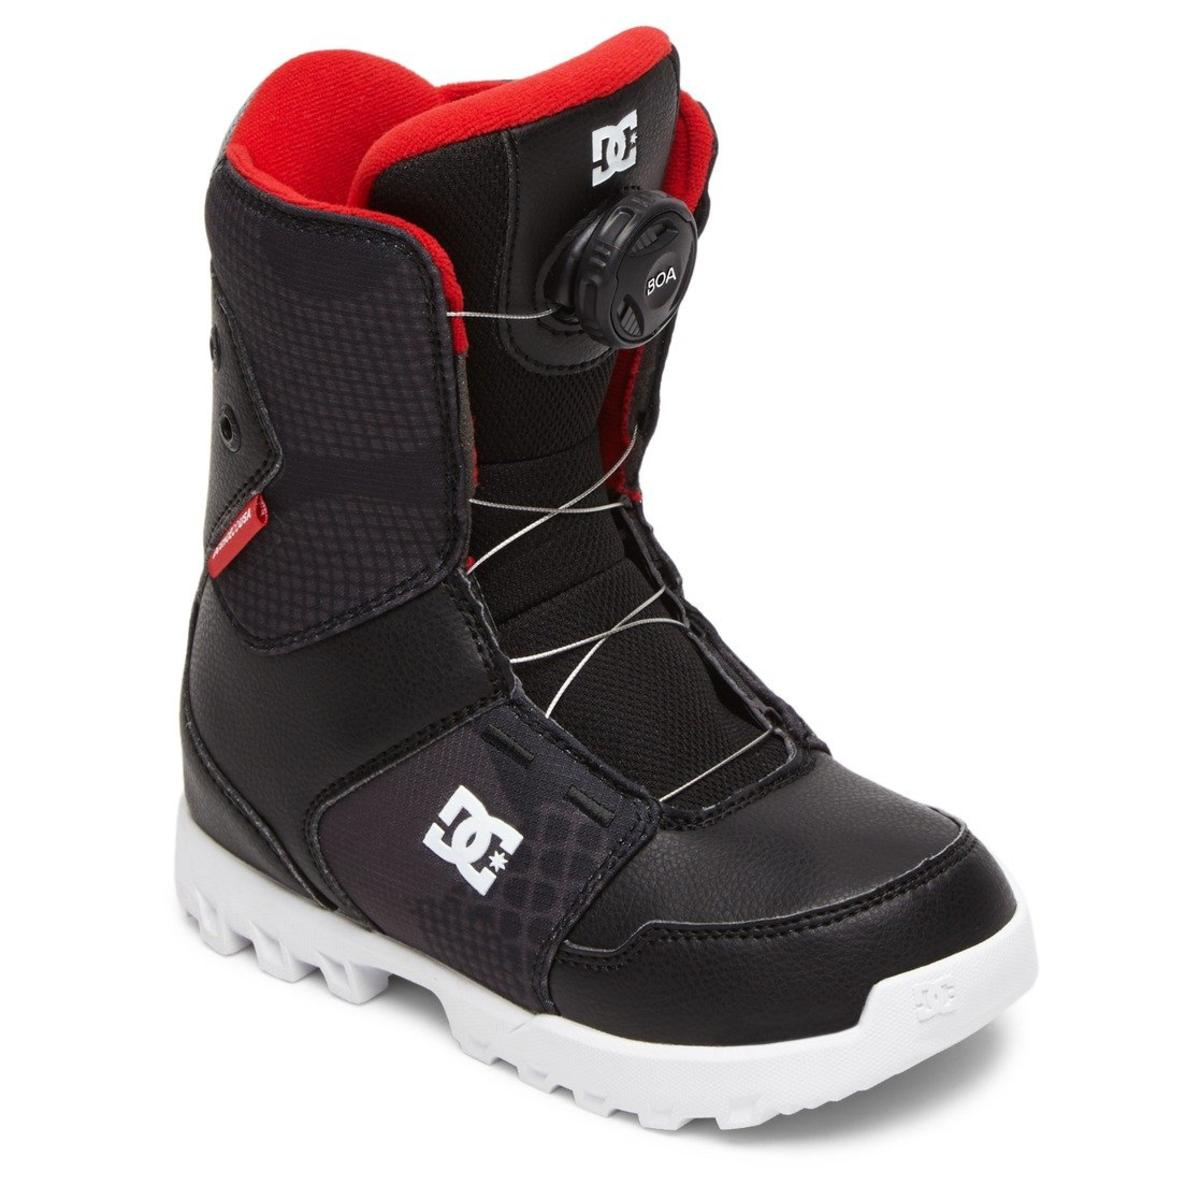 DC Youth Scout BOA 2021 Youth Snowboard Boots